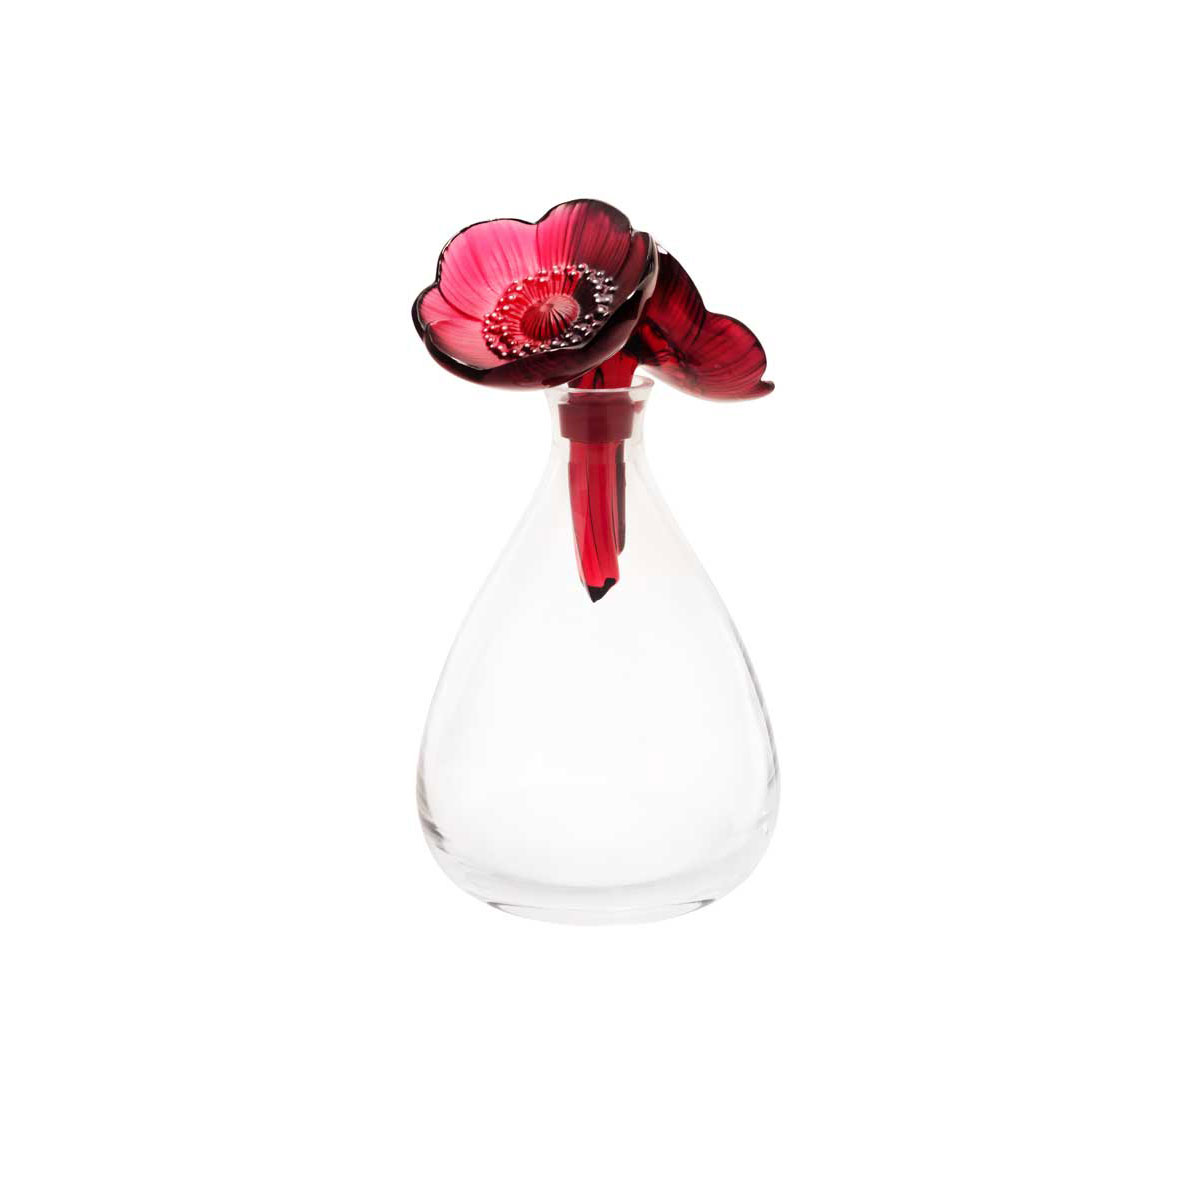 Lalique Crystal, Two Anemones Crystal Decanter, Red and White Enamelled